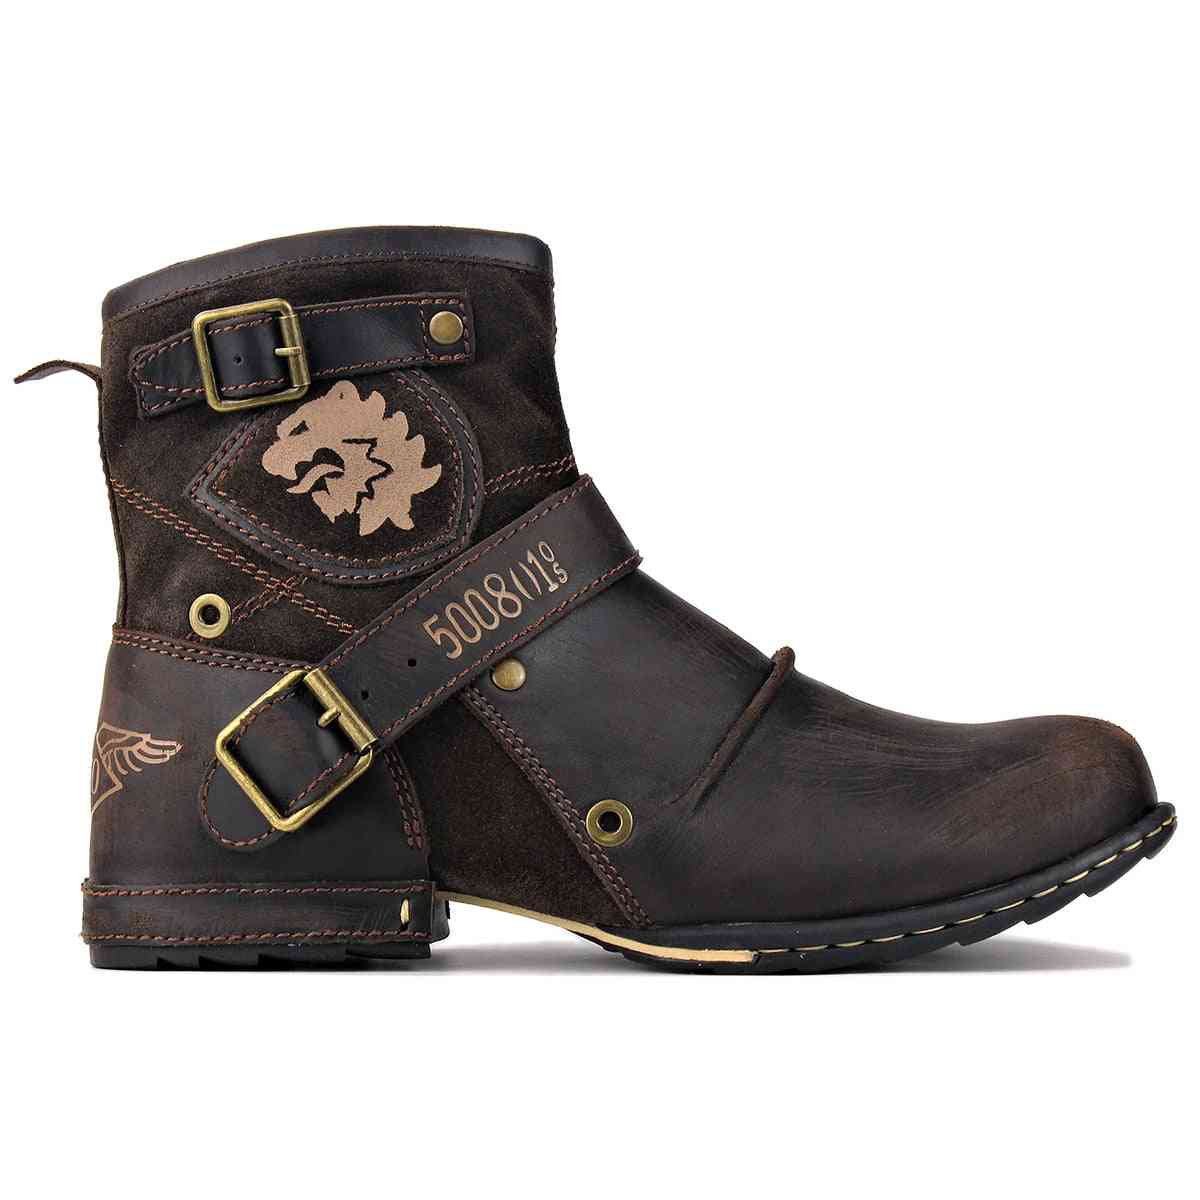 Genuine Leather High-quality Cowboy Boots With Zipper-up